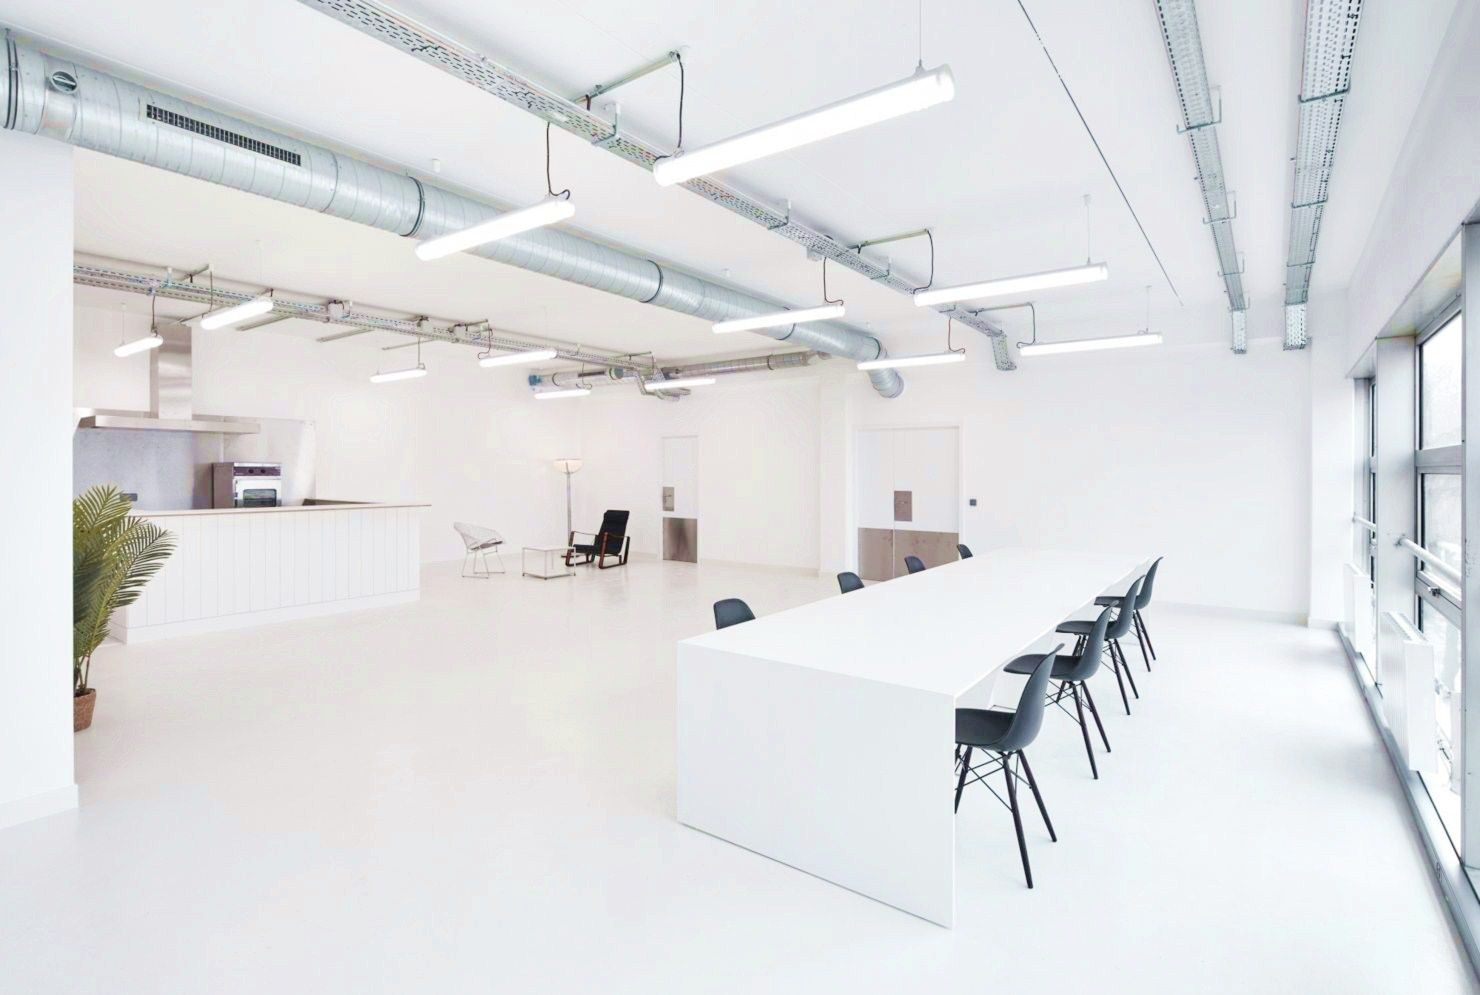 Inspiring office meeting room with passionate interior style giving them multiple benefits for productive